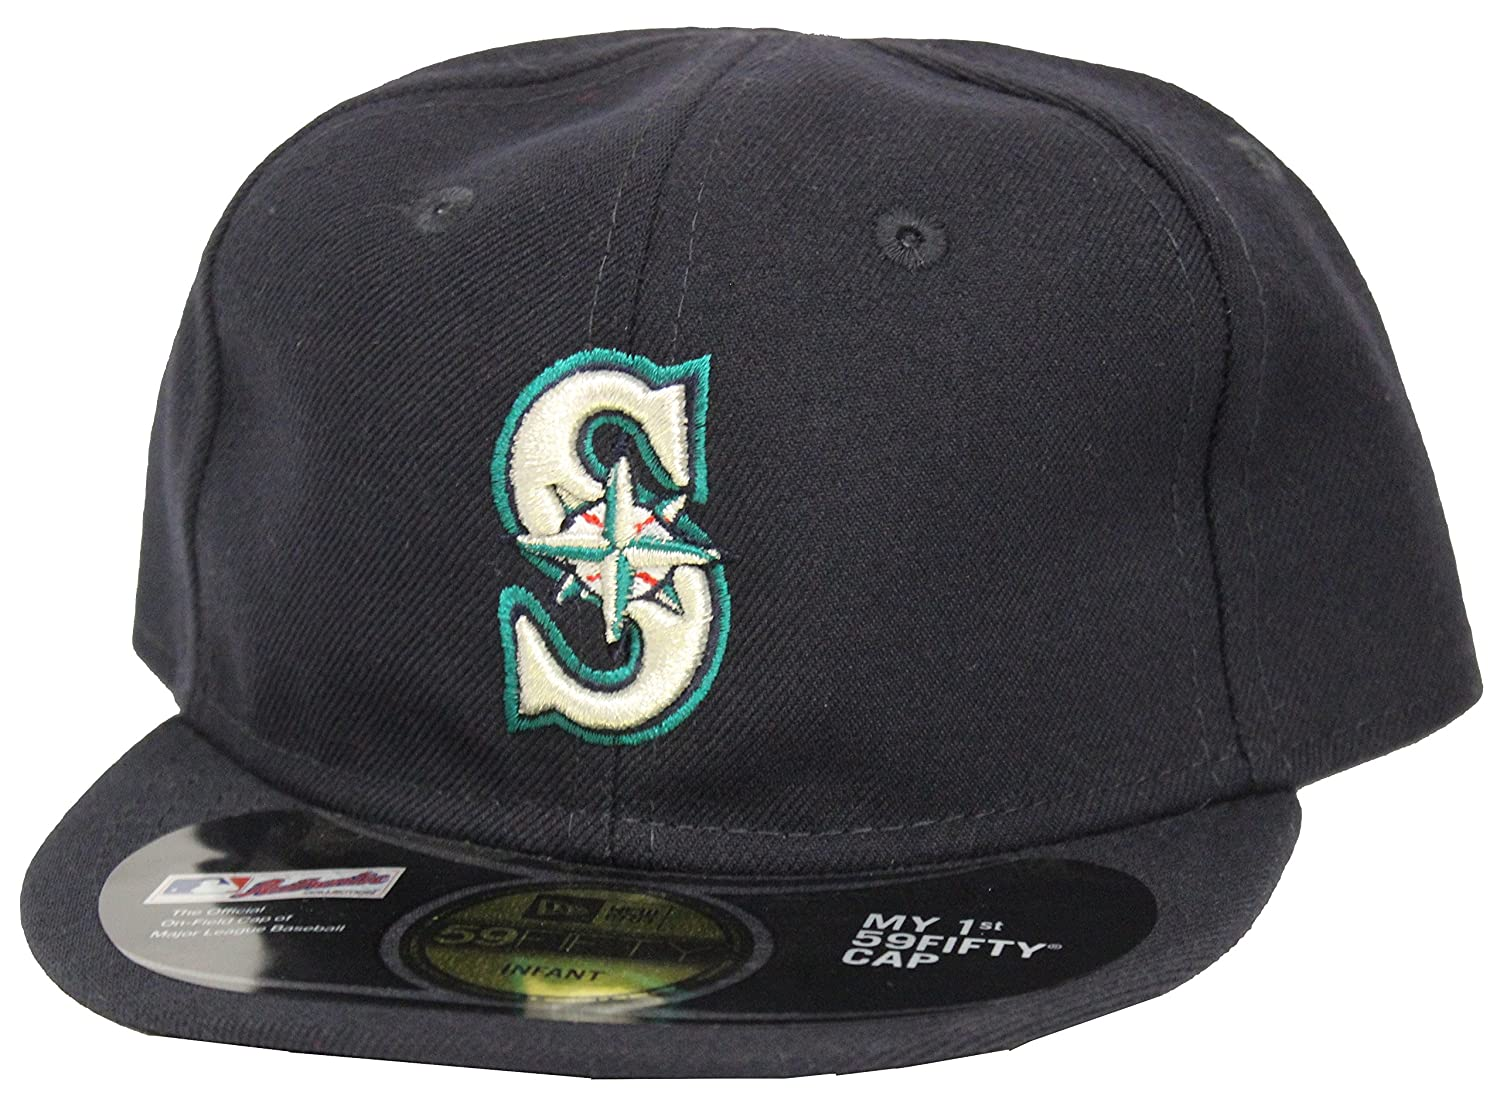 8c7dc3749b3 Amazon.com  New Era 59Fifty Seattle Marines My 1st Fitted Cap  Clothing